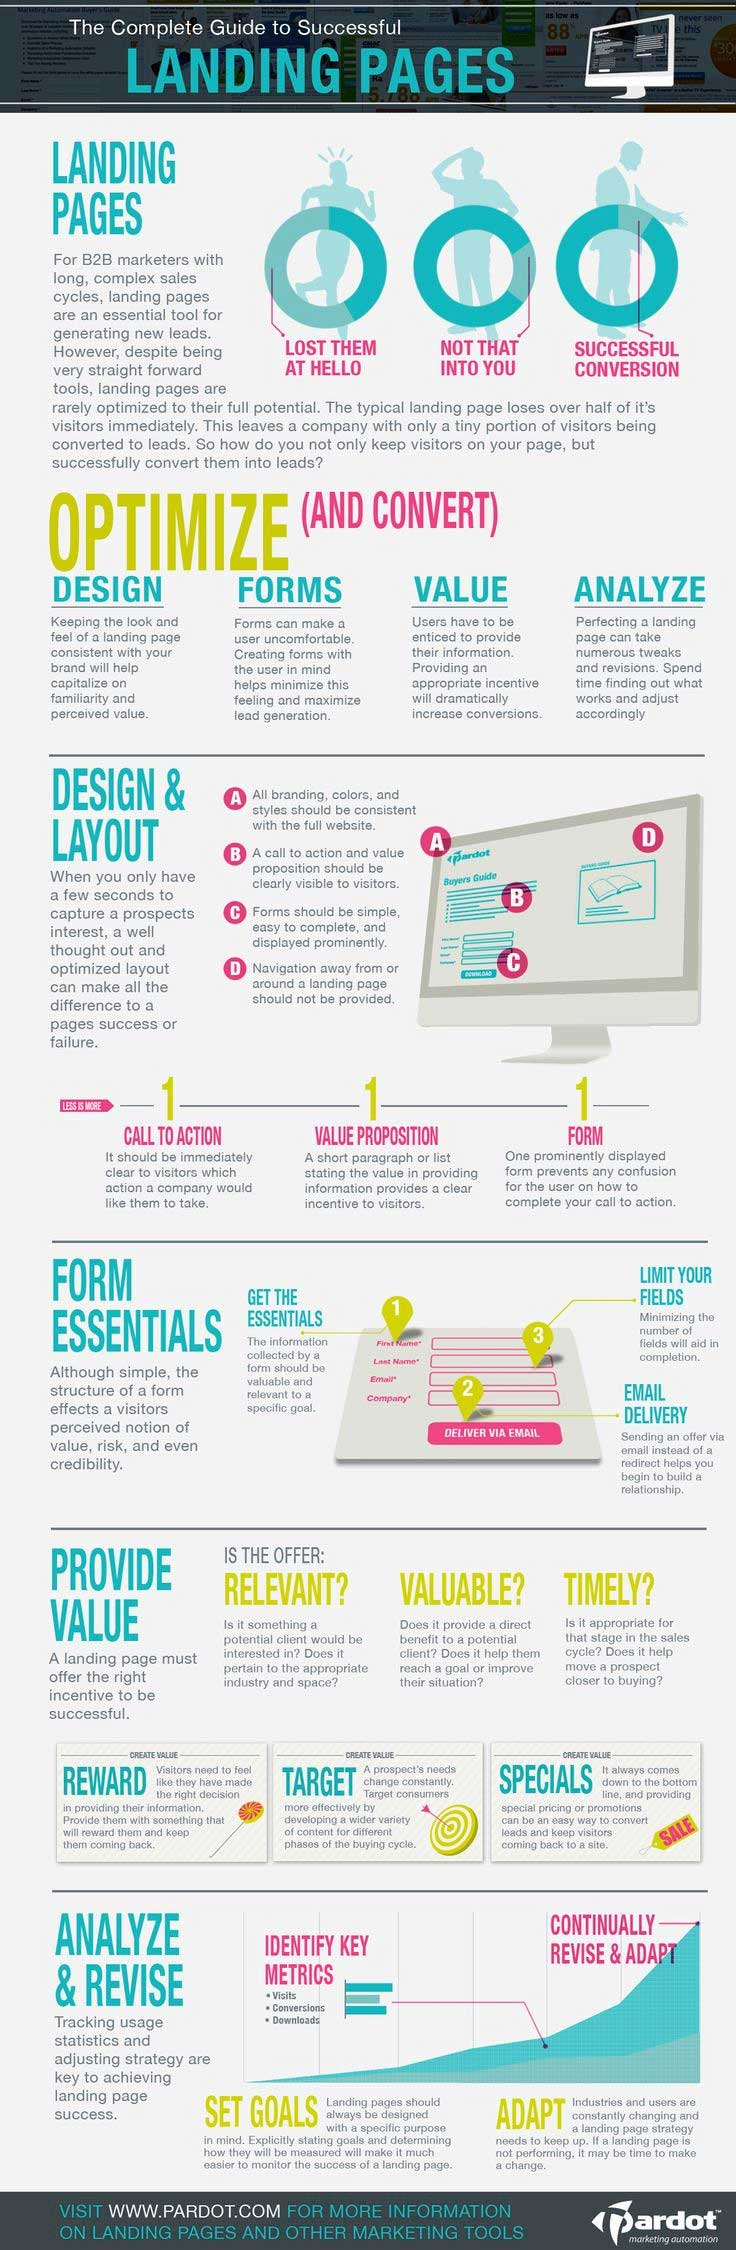 Guide to Successful Landing Pages Infographic